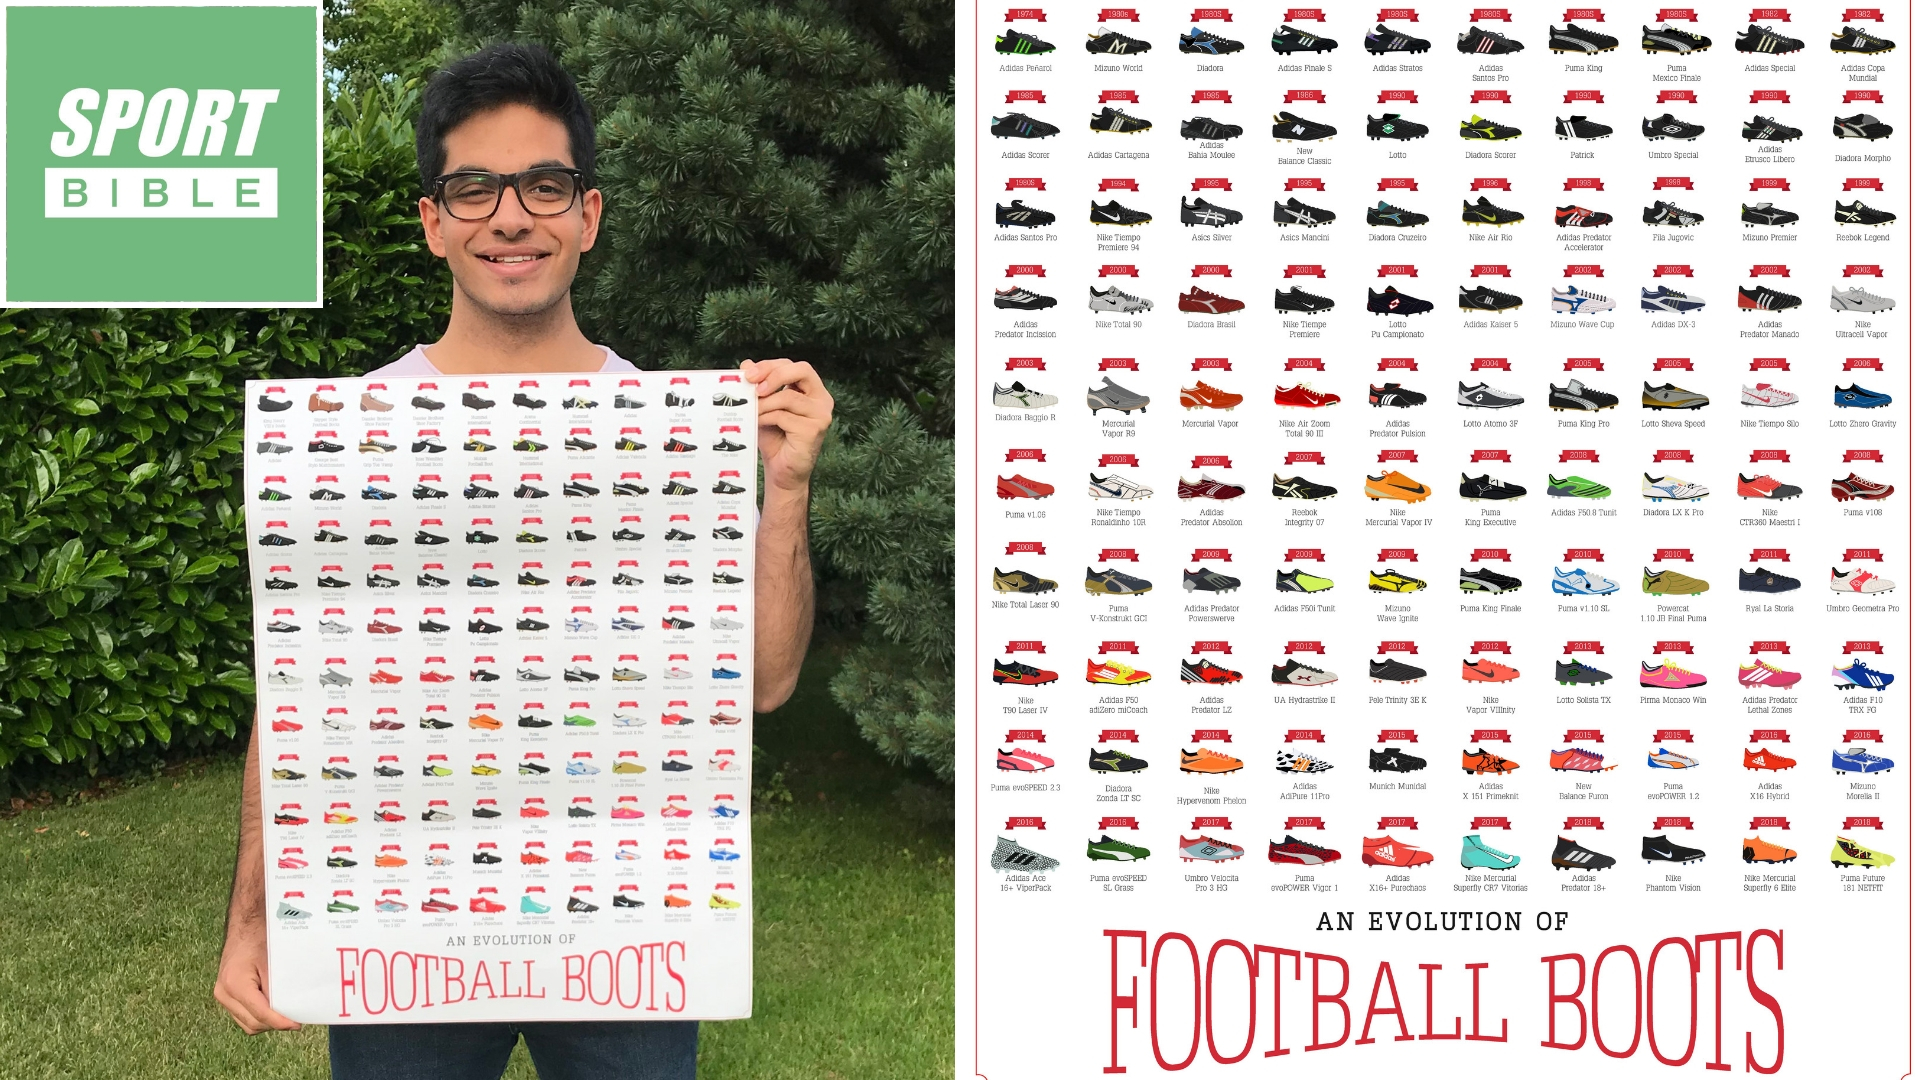 Scorpia Prints founder Shikhar Sachdev, 22, posing with a copy of the 'Evolution of Football Boots' poster. Credit: Scorpia Prints/Shikhar Sachdev